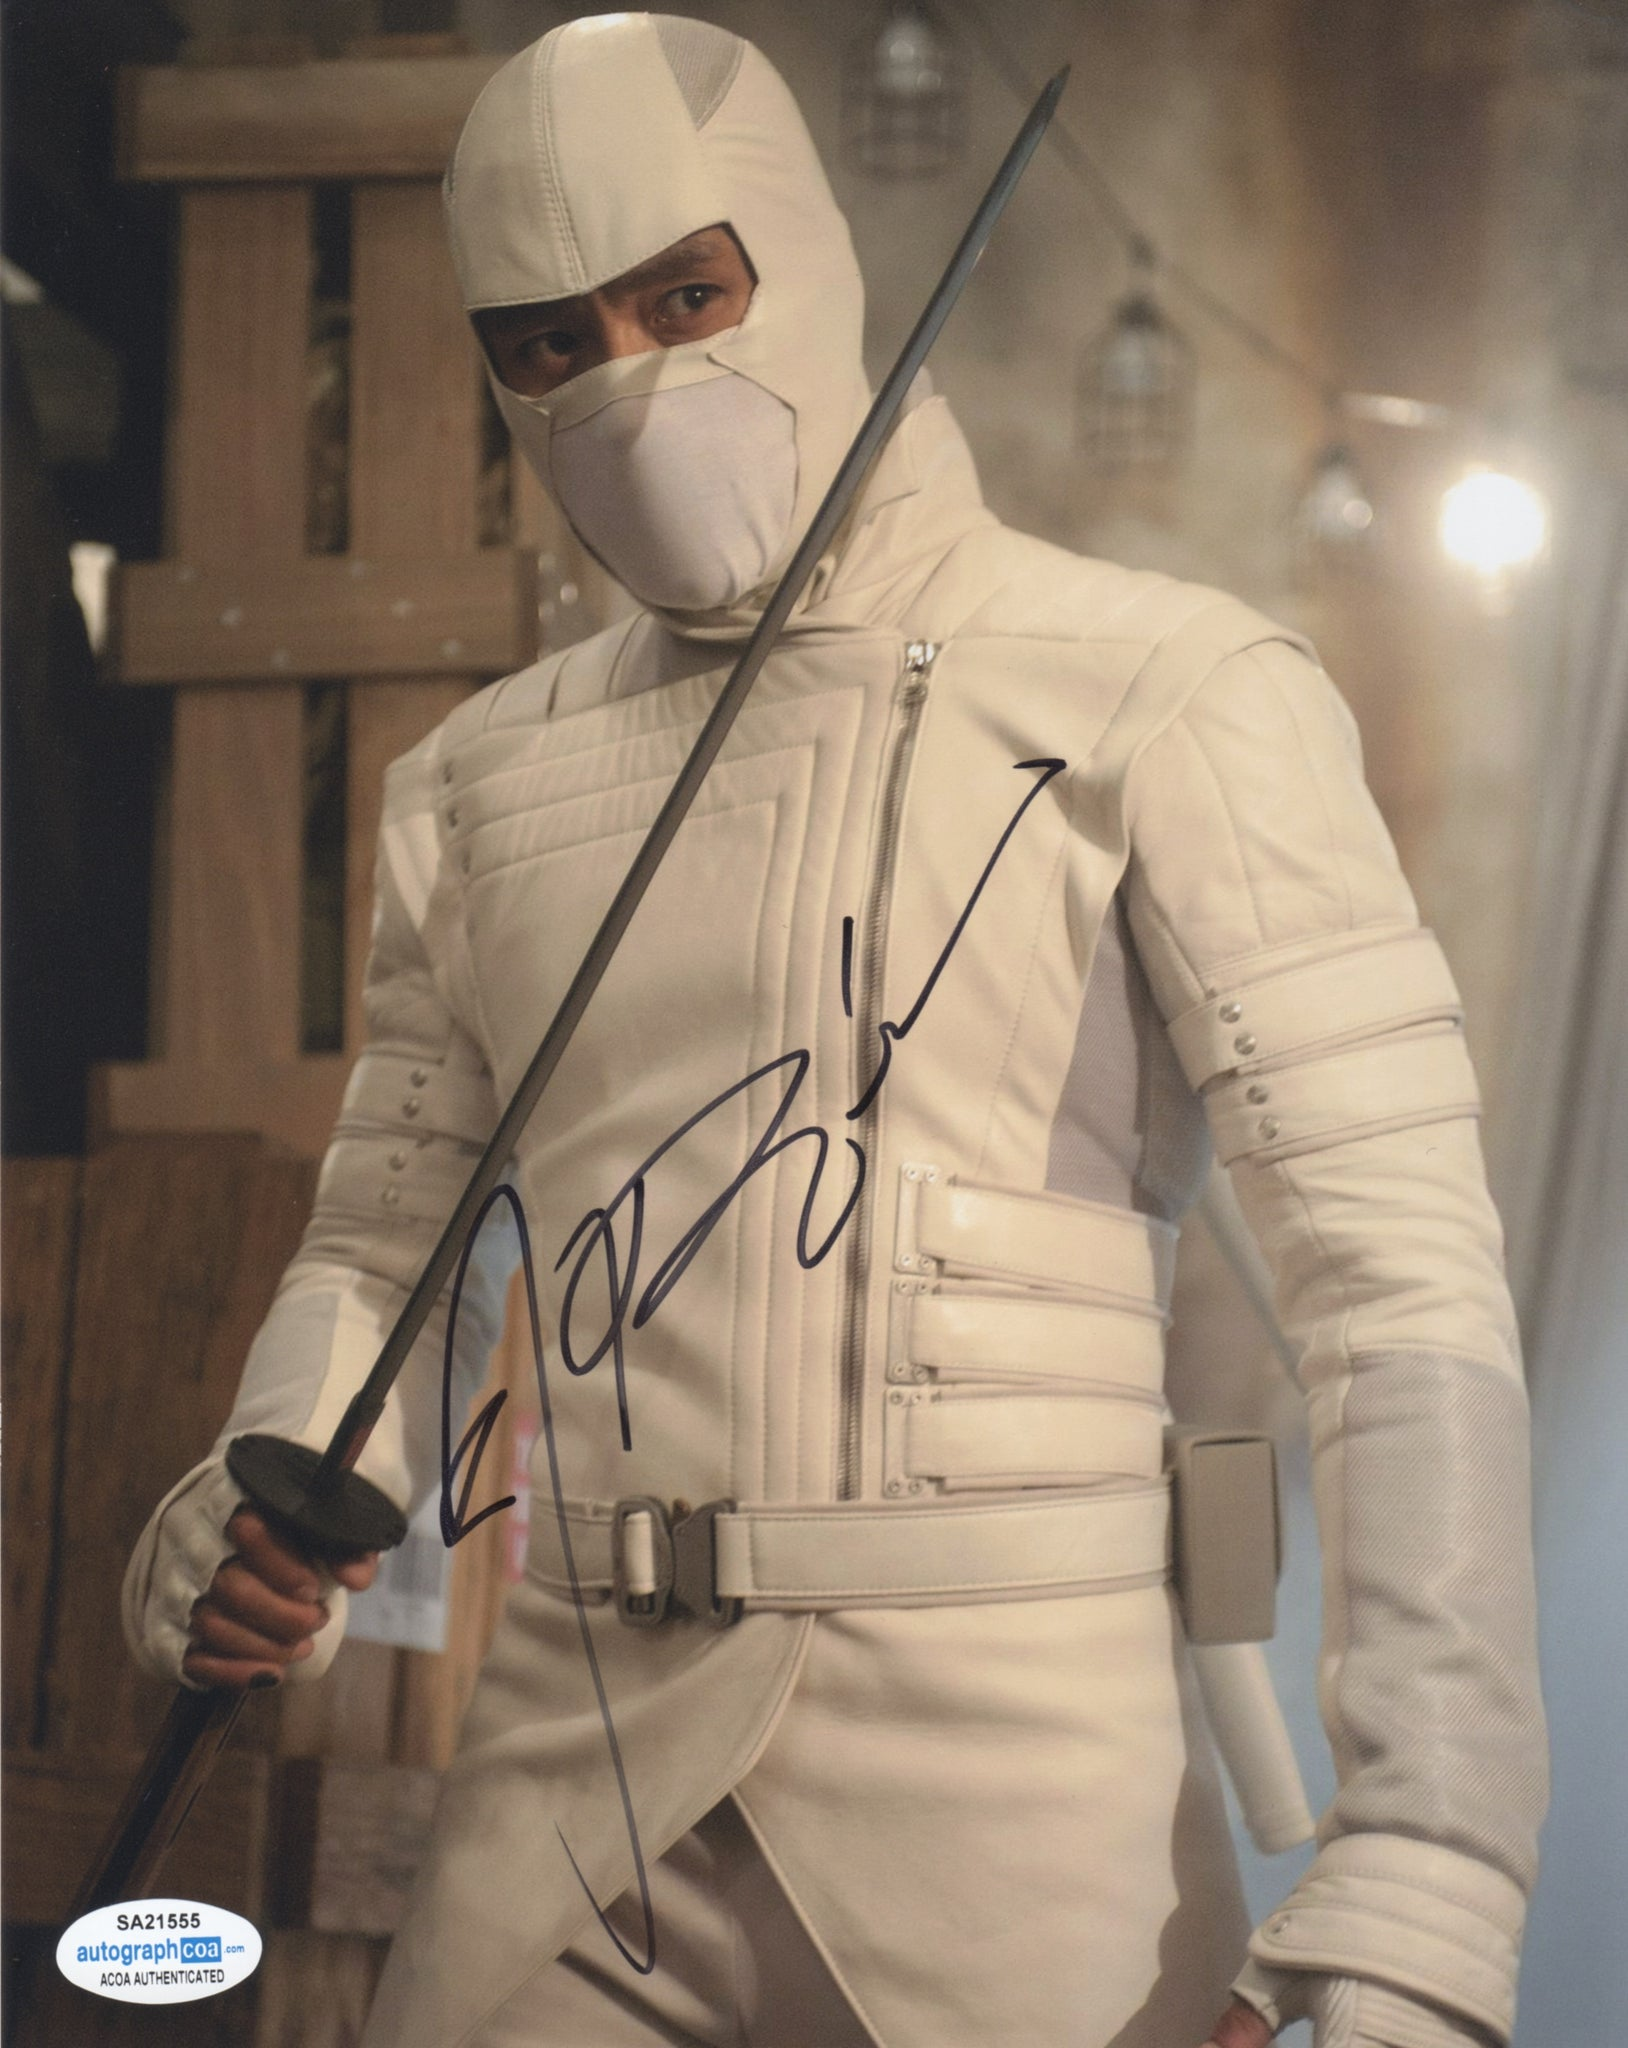 Lee Byung-Hun GI Joe Signed Autograph 8x10 Photo ACOA - Outlaw Hobbies Authentic Autographs